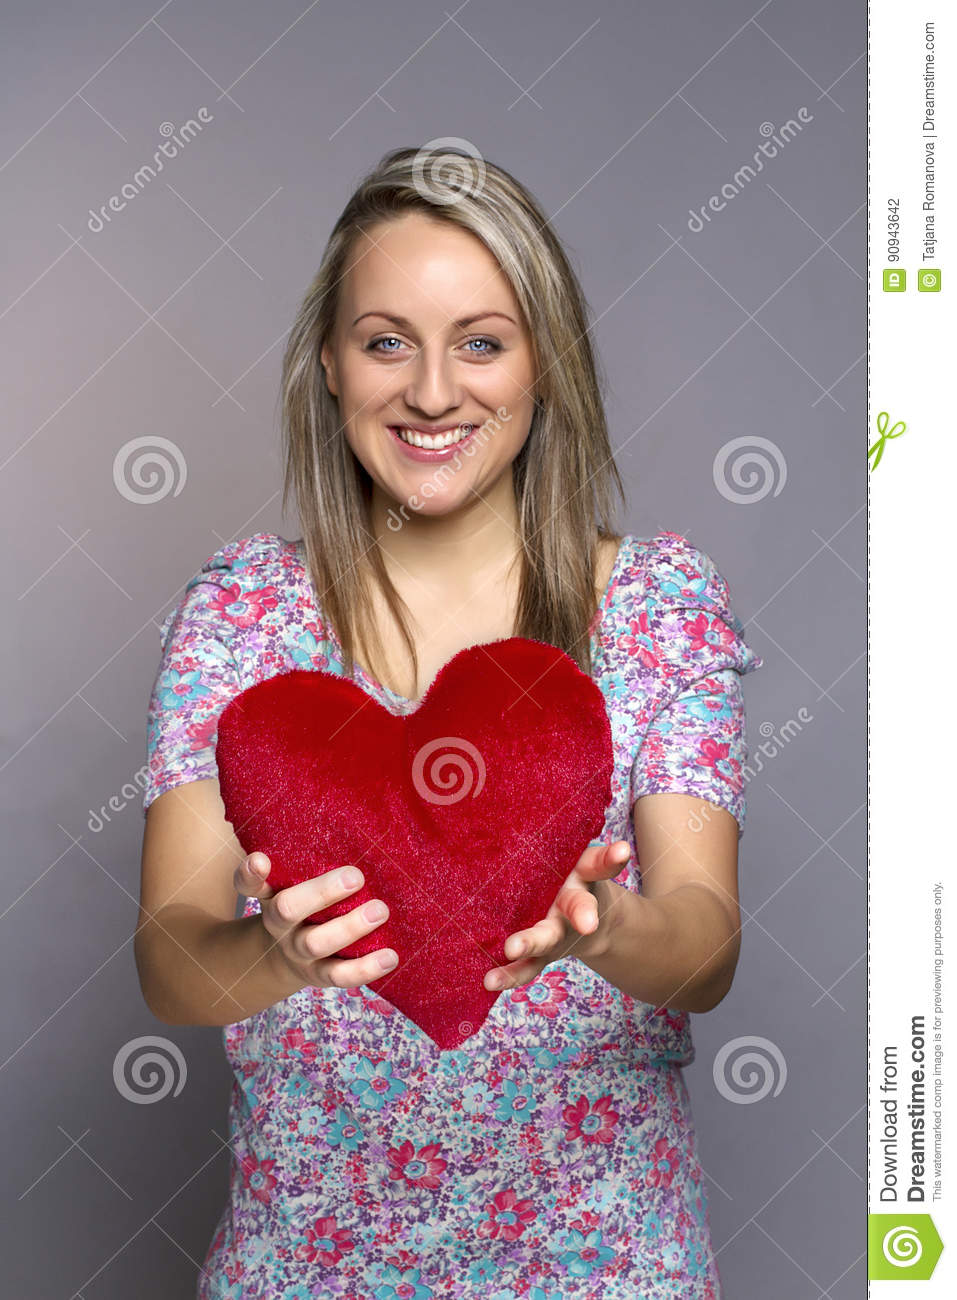 Attractive smiling woman holding a red heart